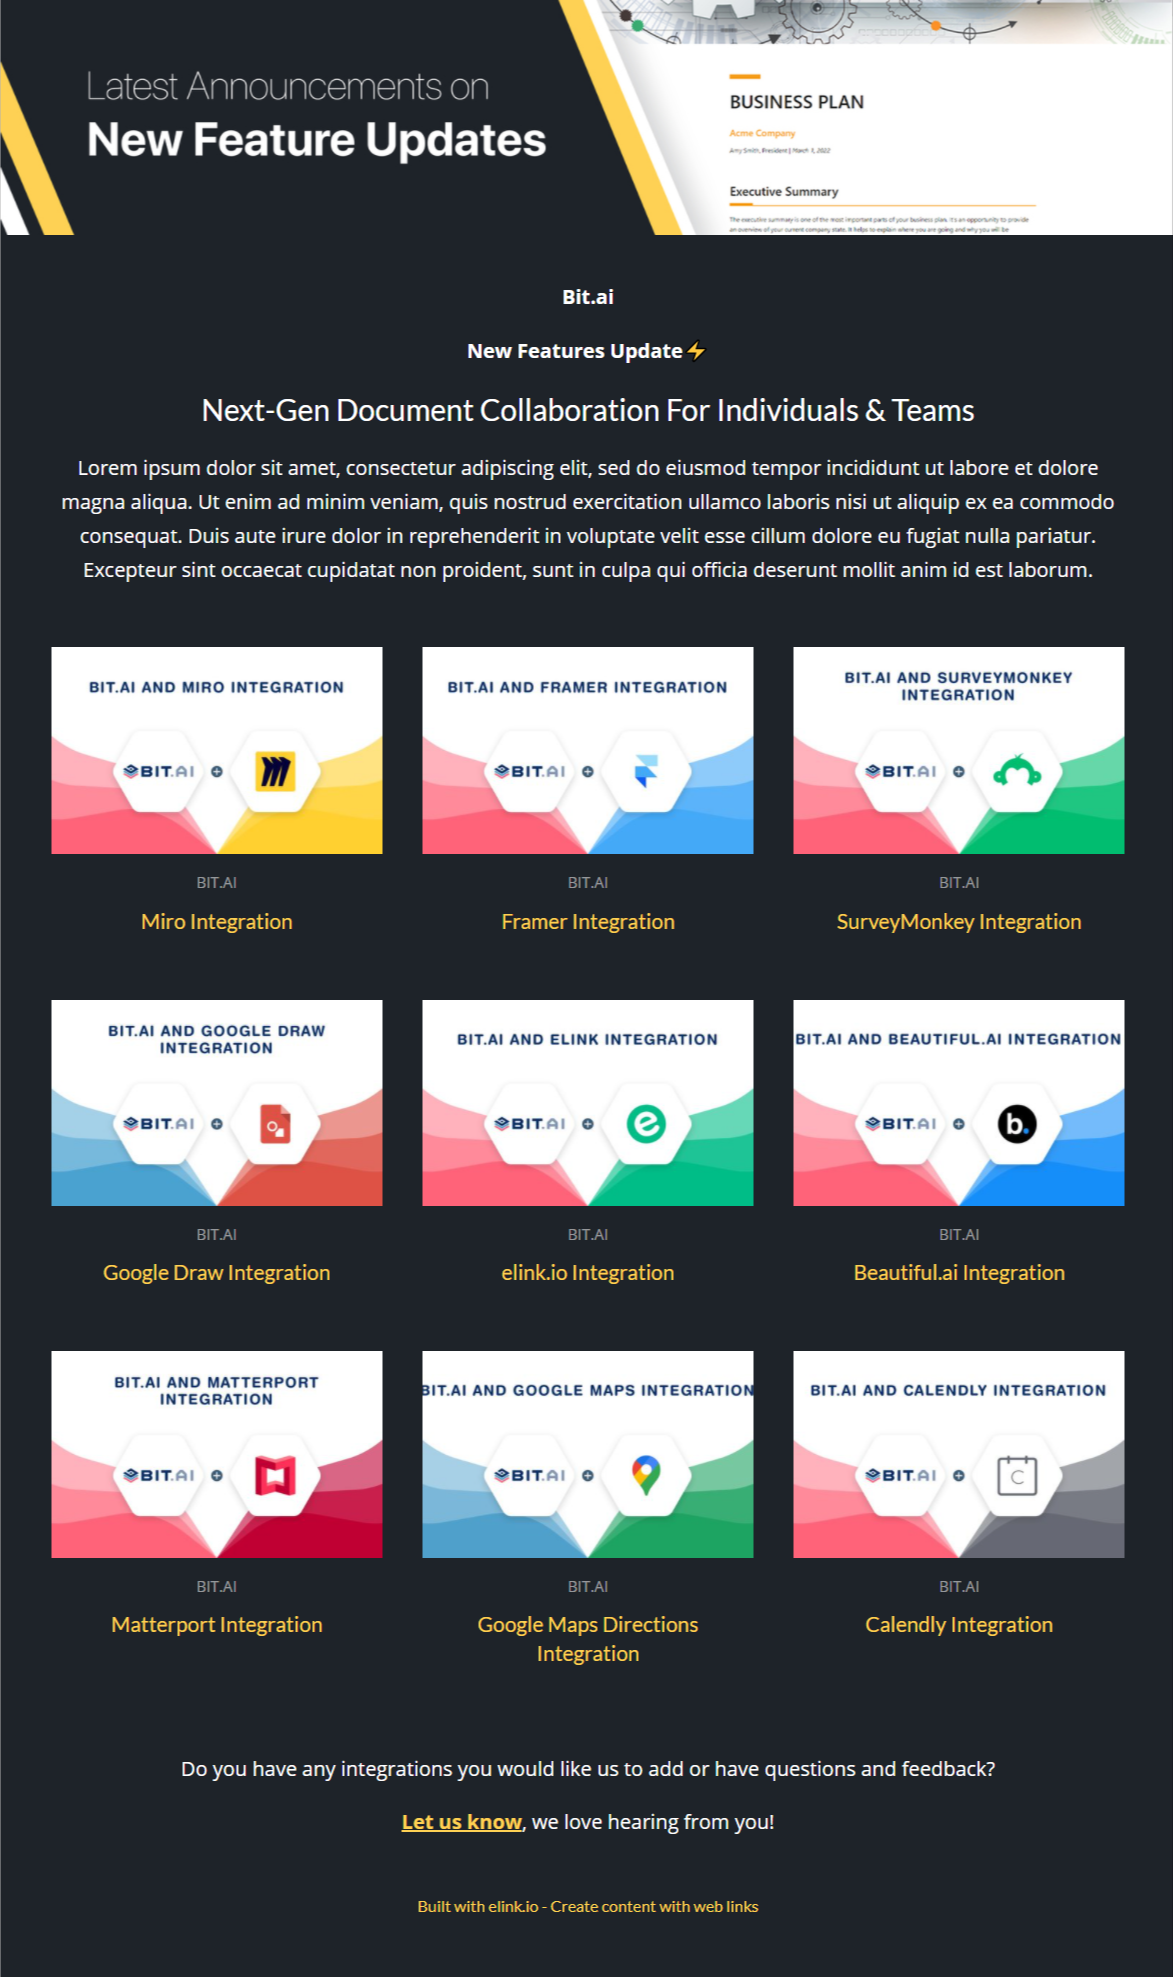 New features update newsletter template for businesses